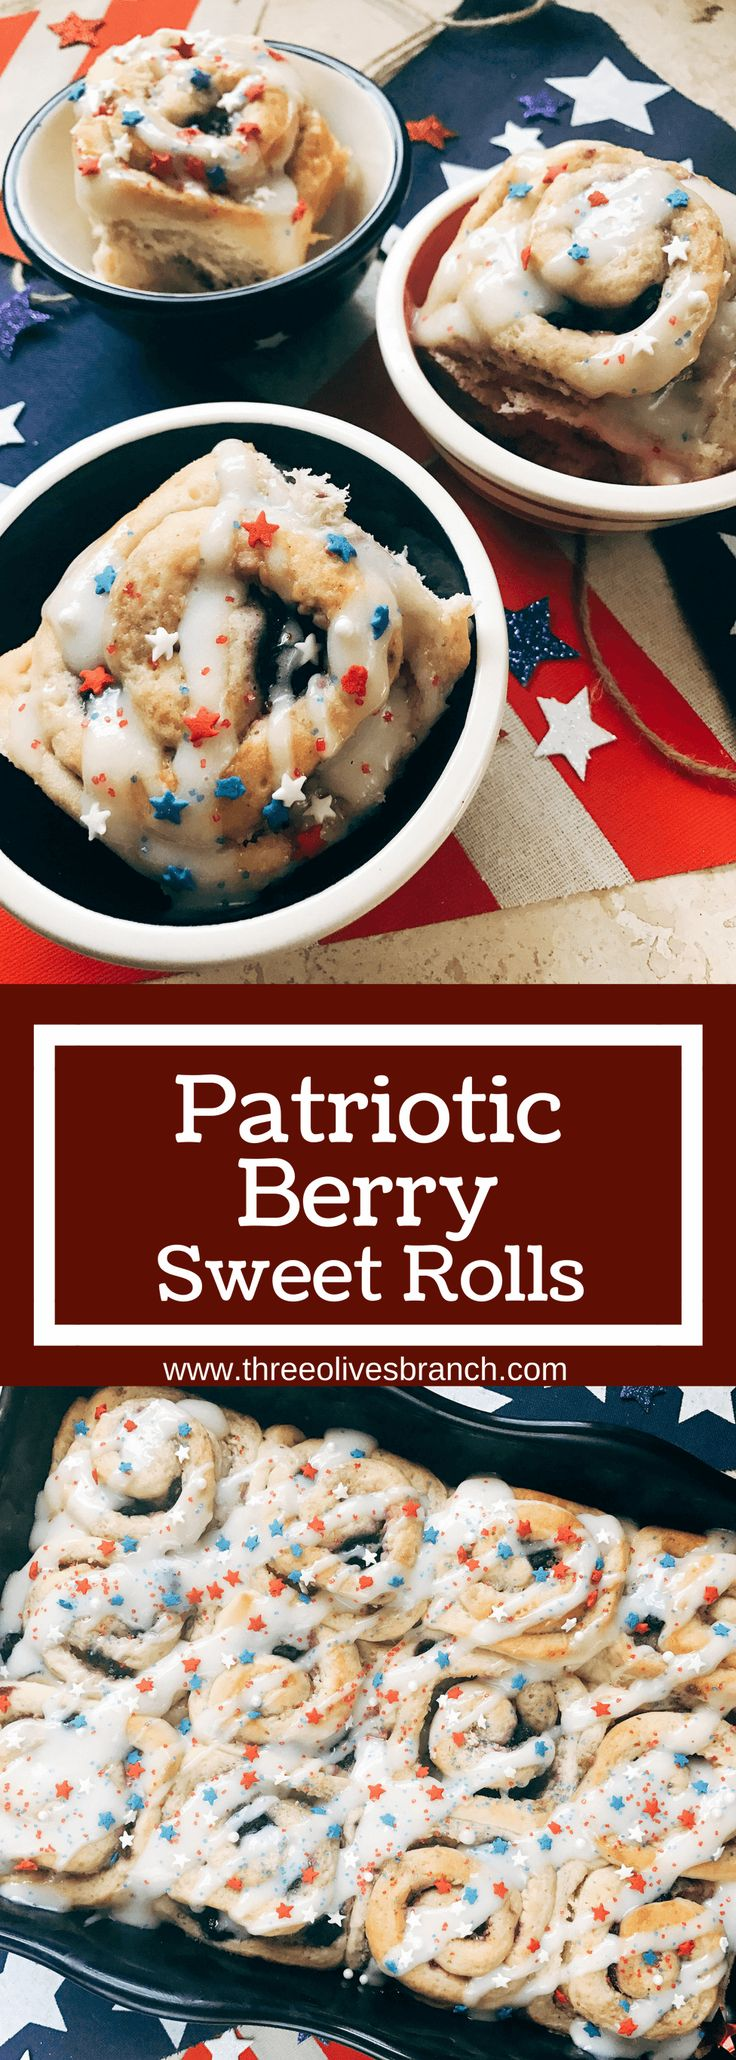 Red, white, and blue sweet rolls for a patriotic morning! A twist on cinnamon rolls, these are filled with cream cheese and mixed berries for a summer treat. Great for USA parties and BBQs like Labor Day, Memorial Day, and 4th of July. Make them in advance for a quick and easy breakfast or brunch to start the holiday. They even work as a dessert! Vegetarian and kid friendly. Patriotic Berry Sweet Rolls | Three Olives Branch | www.threeolivesbranch.om